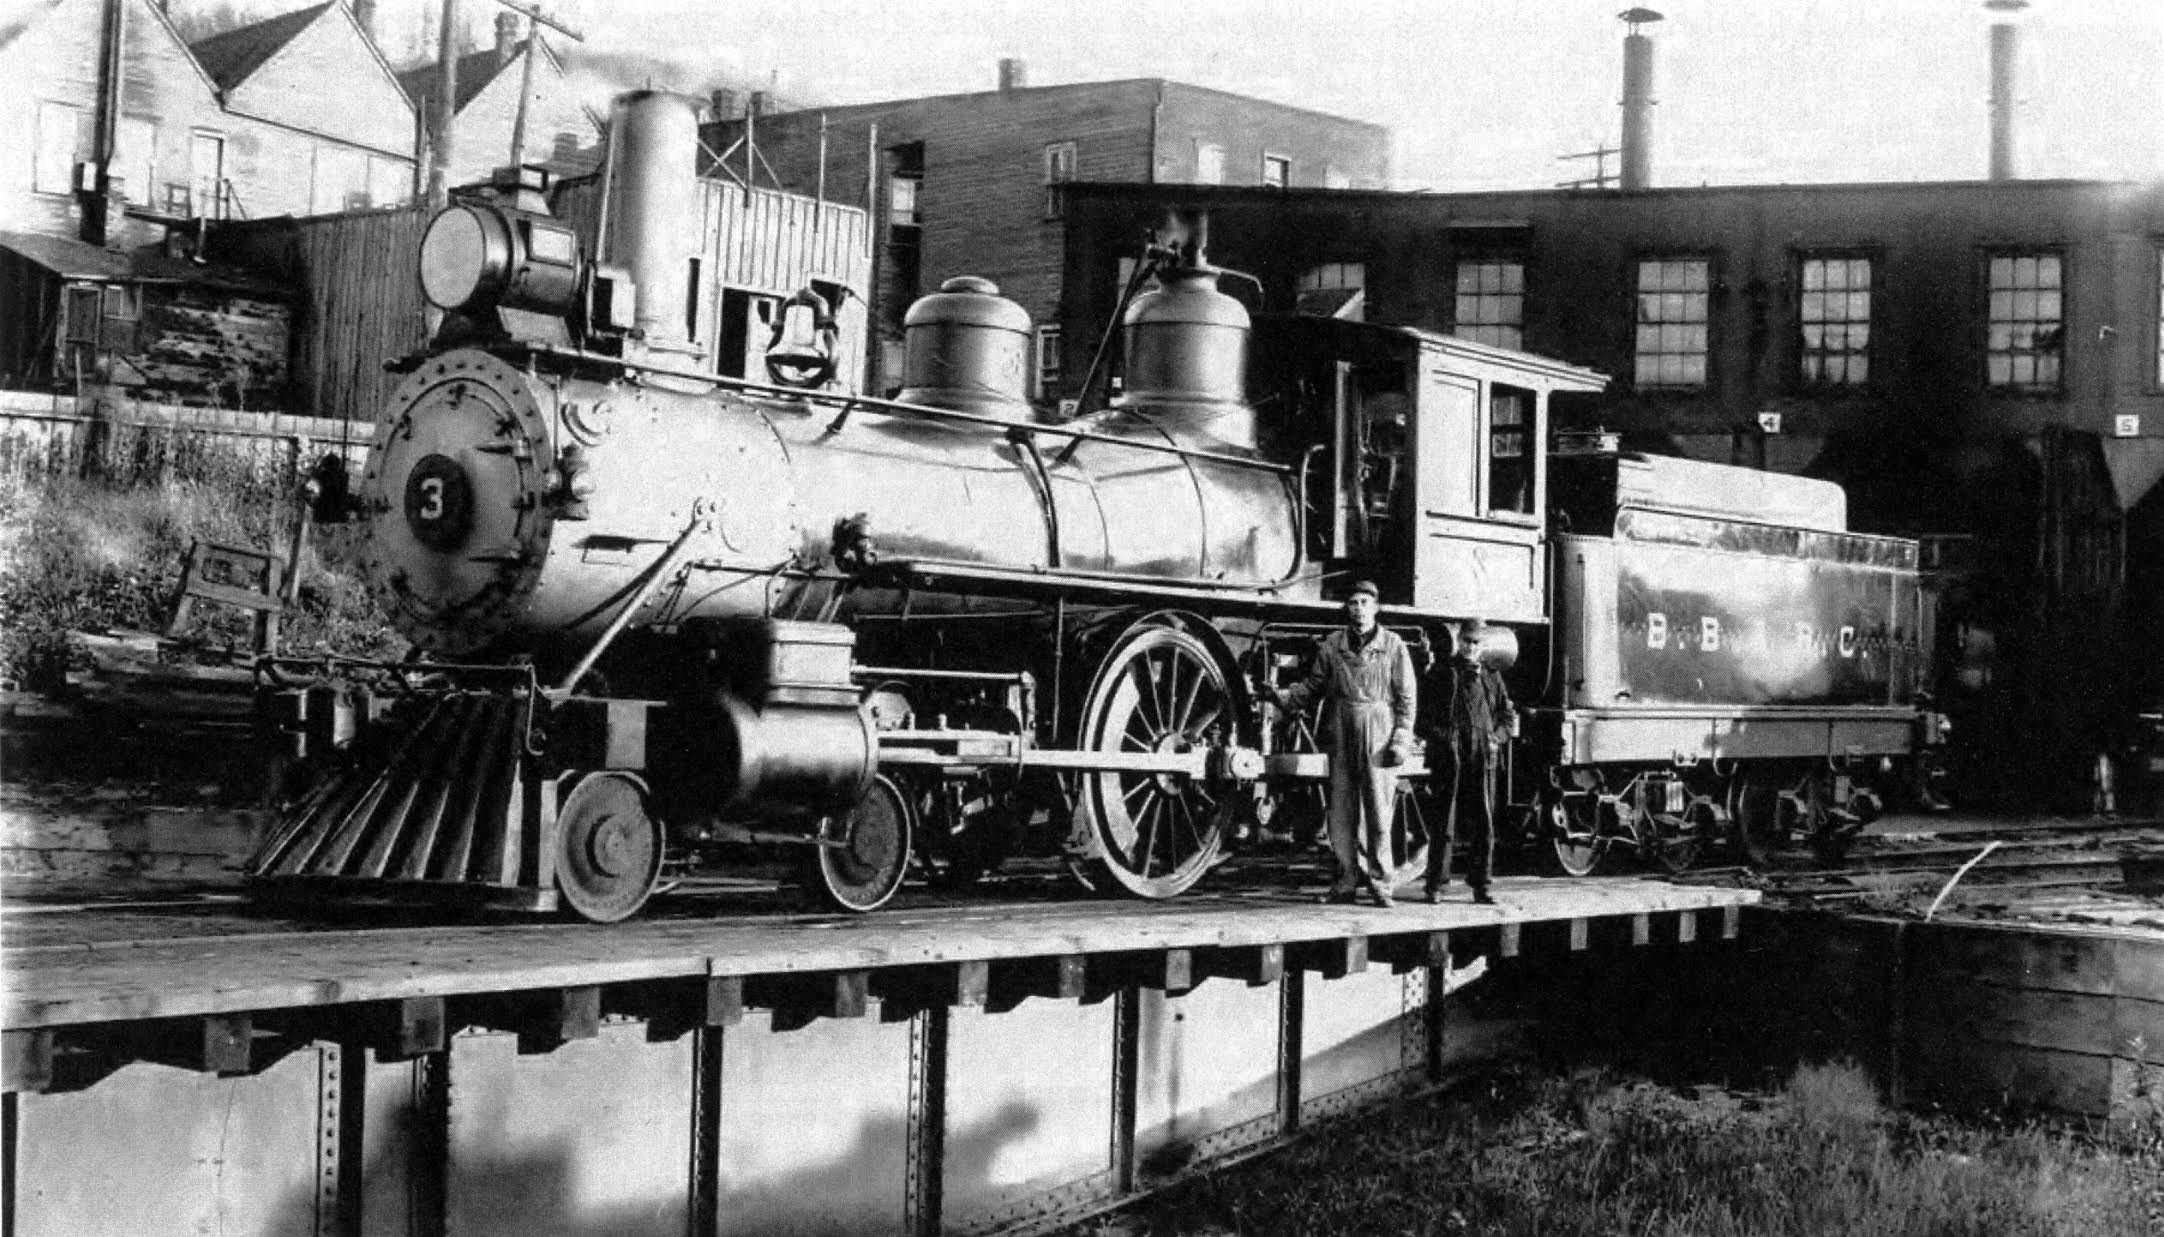 A old photo of a locomotive engine parked on the turntable near the roundhouse